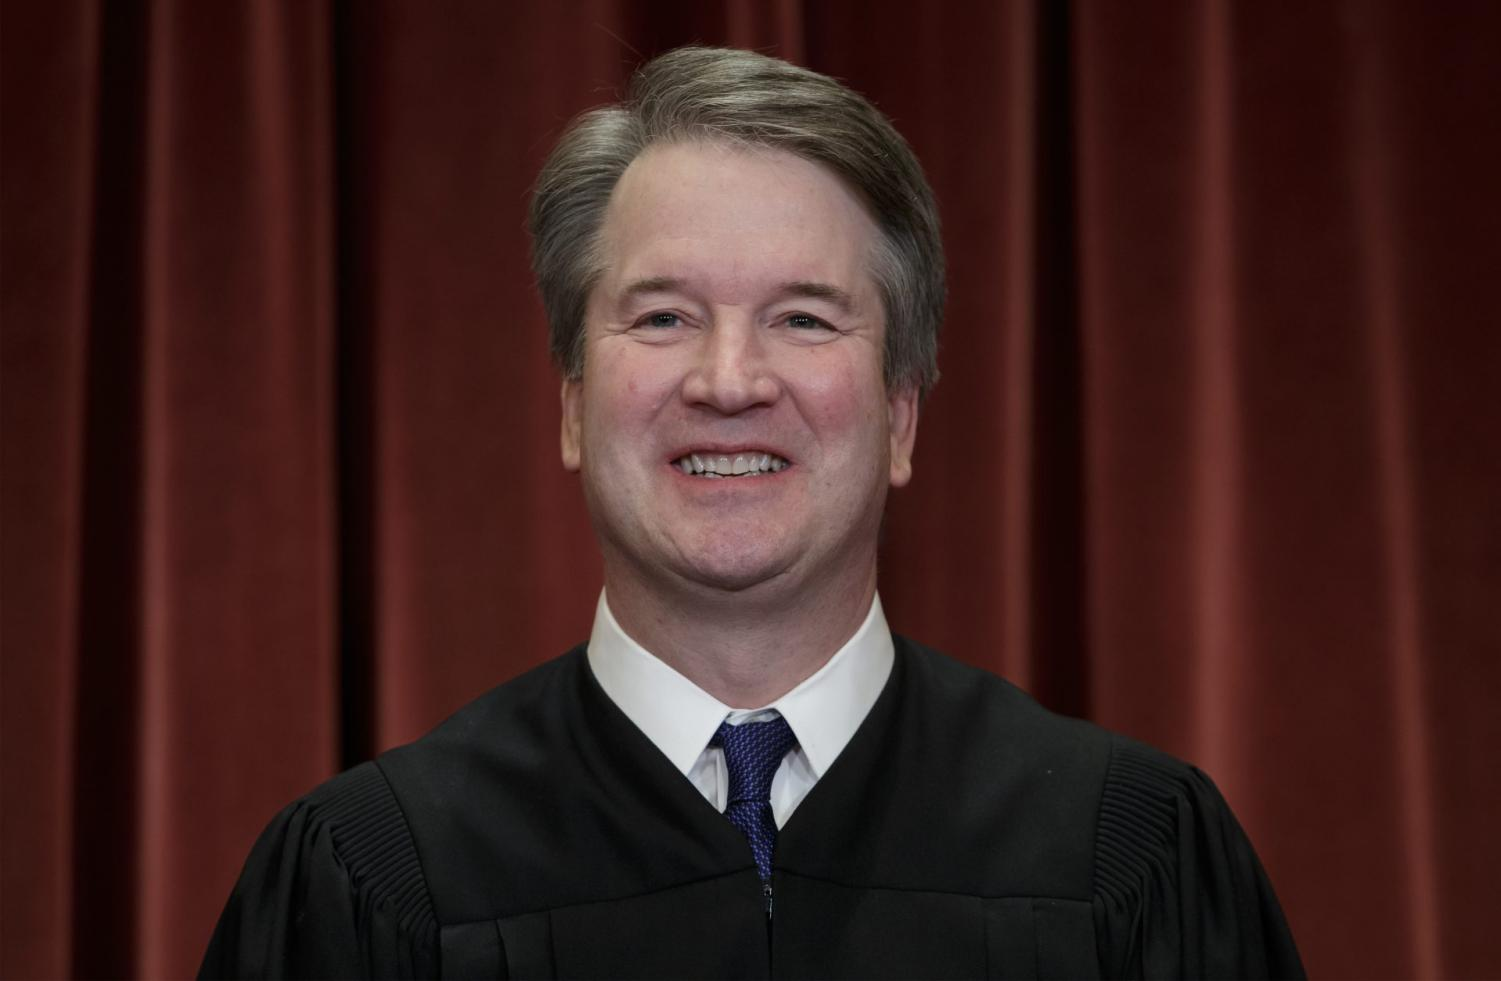 In this Nov. 30, 2018, file photo Associate Justice Brett Kavanaugh sits with fellow Supreme Court justices for a group portrait at the Supreme Court Building in Washington.